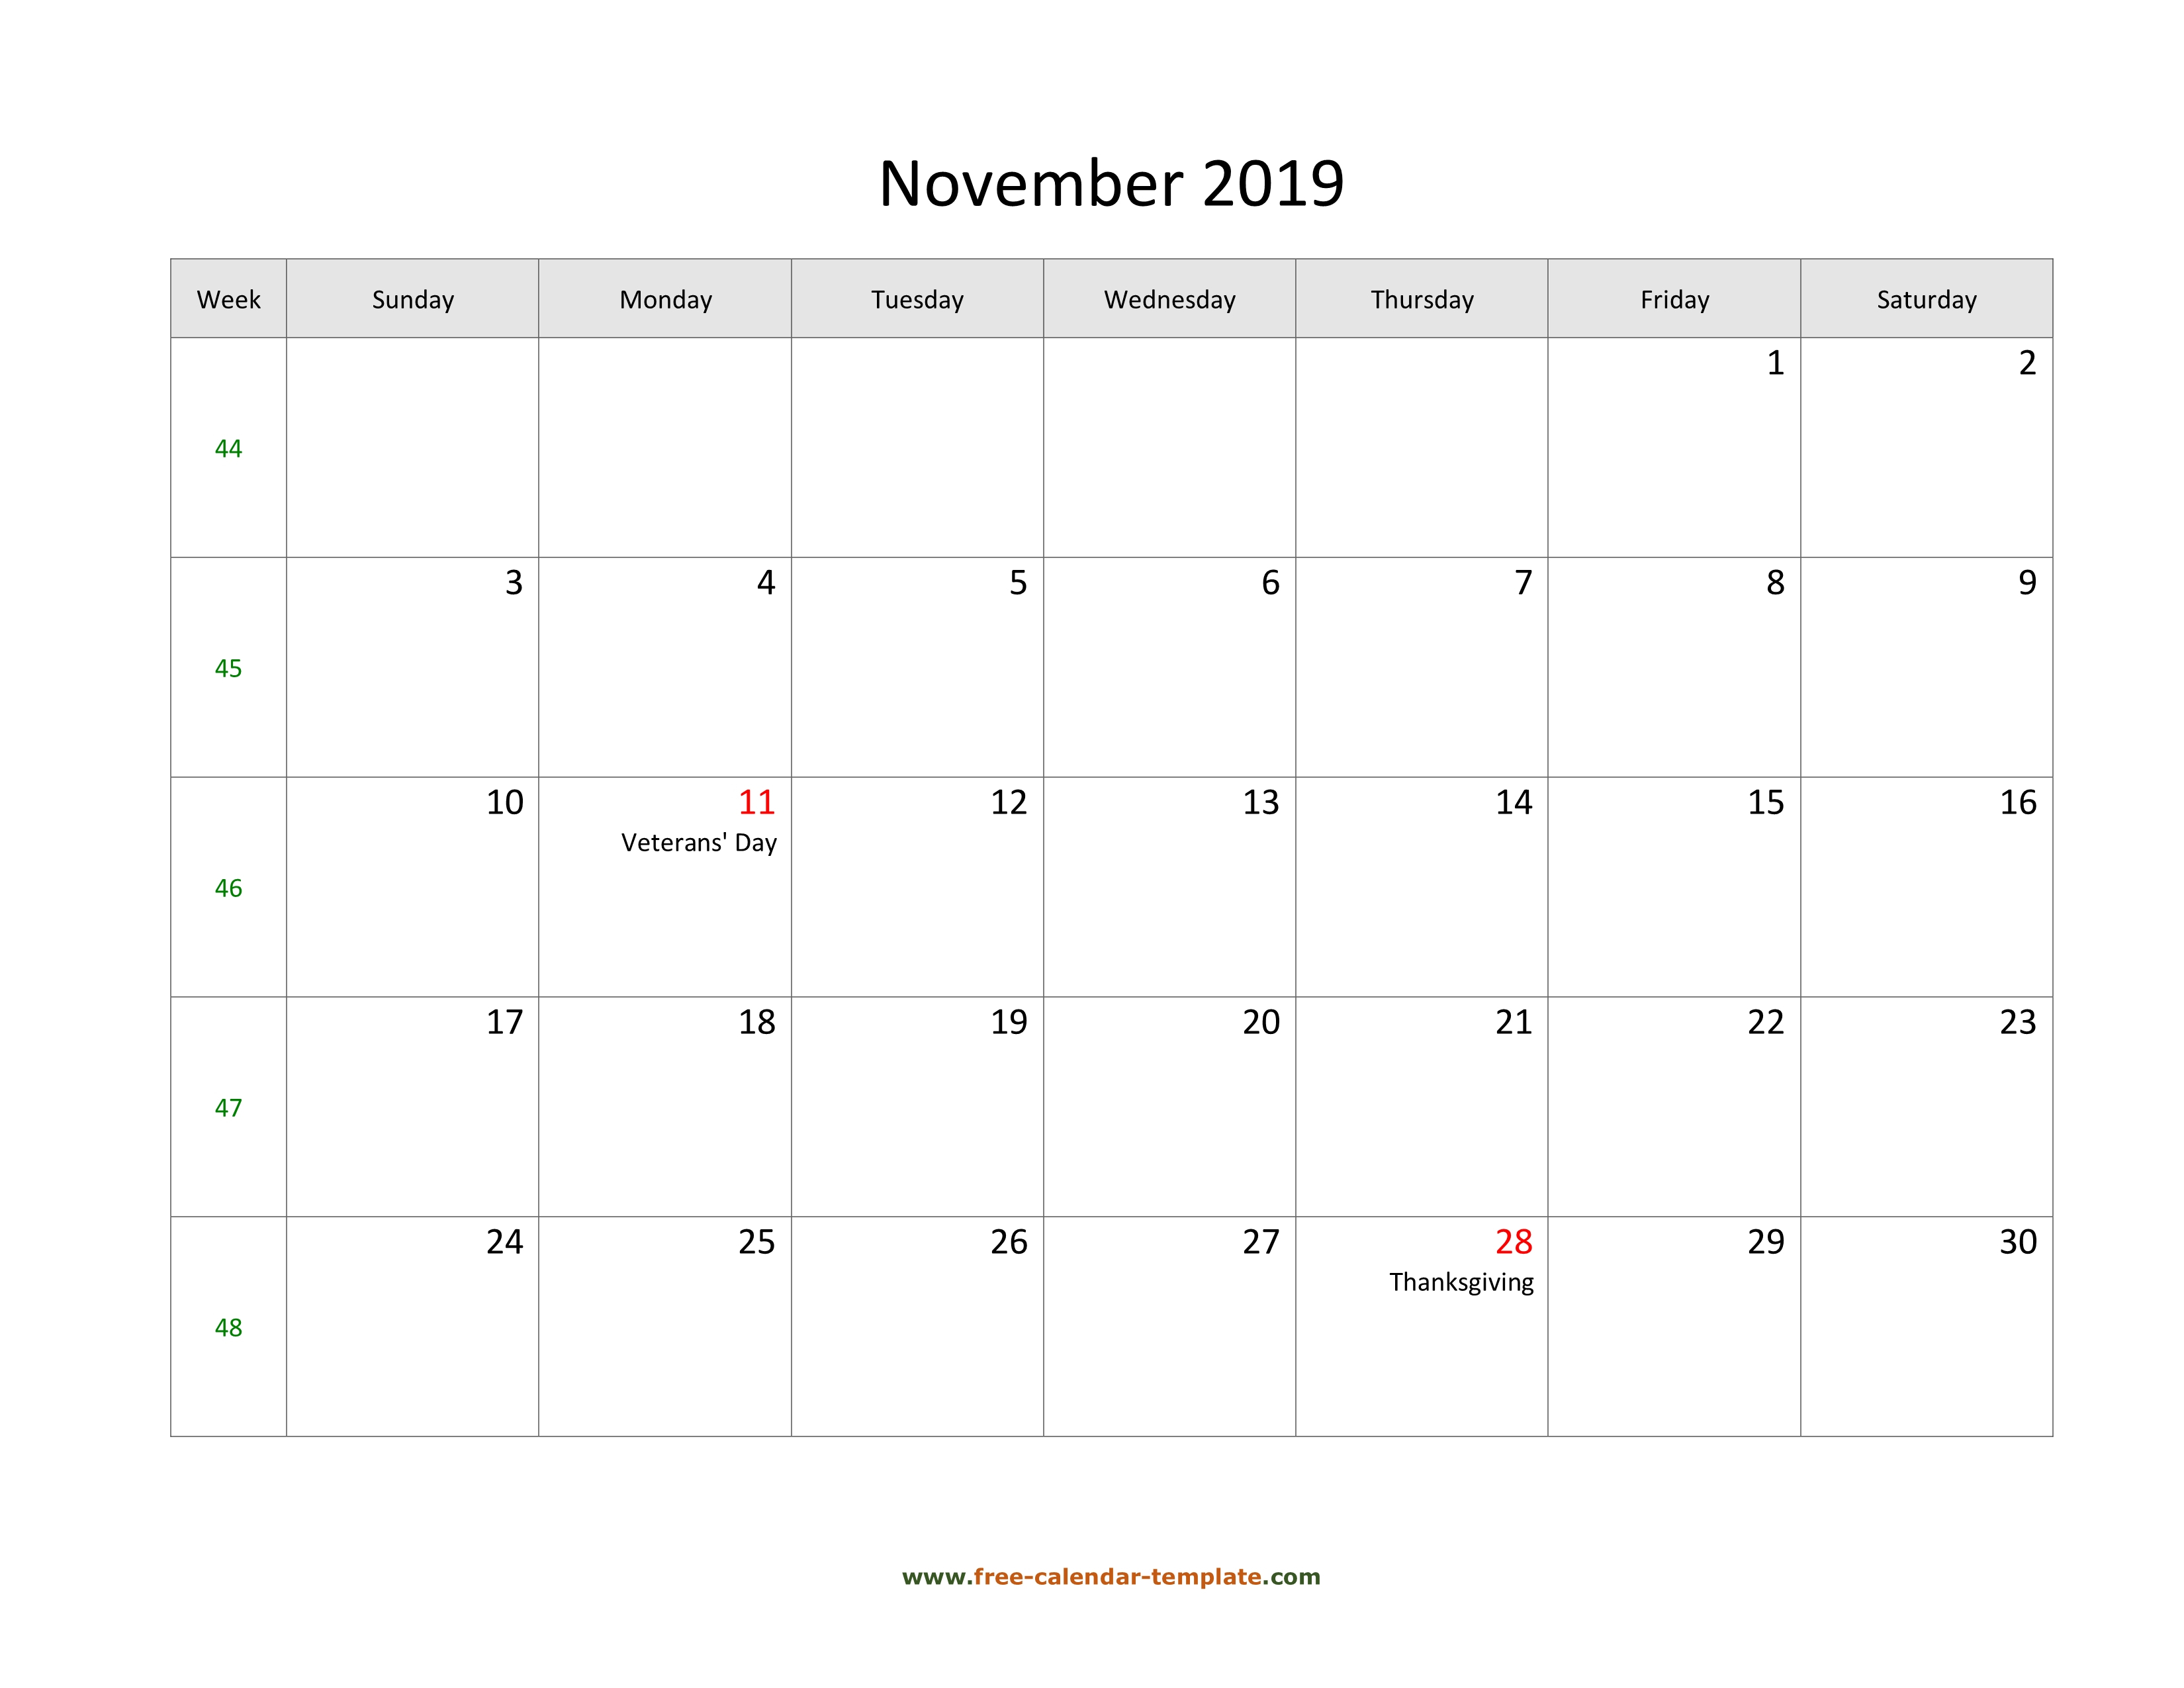 November 2019 Free Calendar Tempplate | Freecalendar with regard to Free Monthly Calendars That Can Be Edited